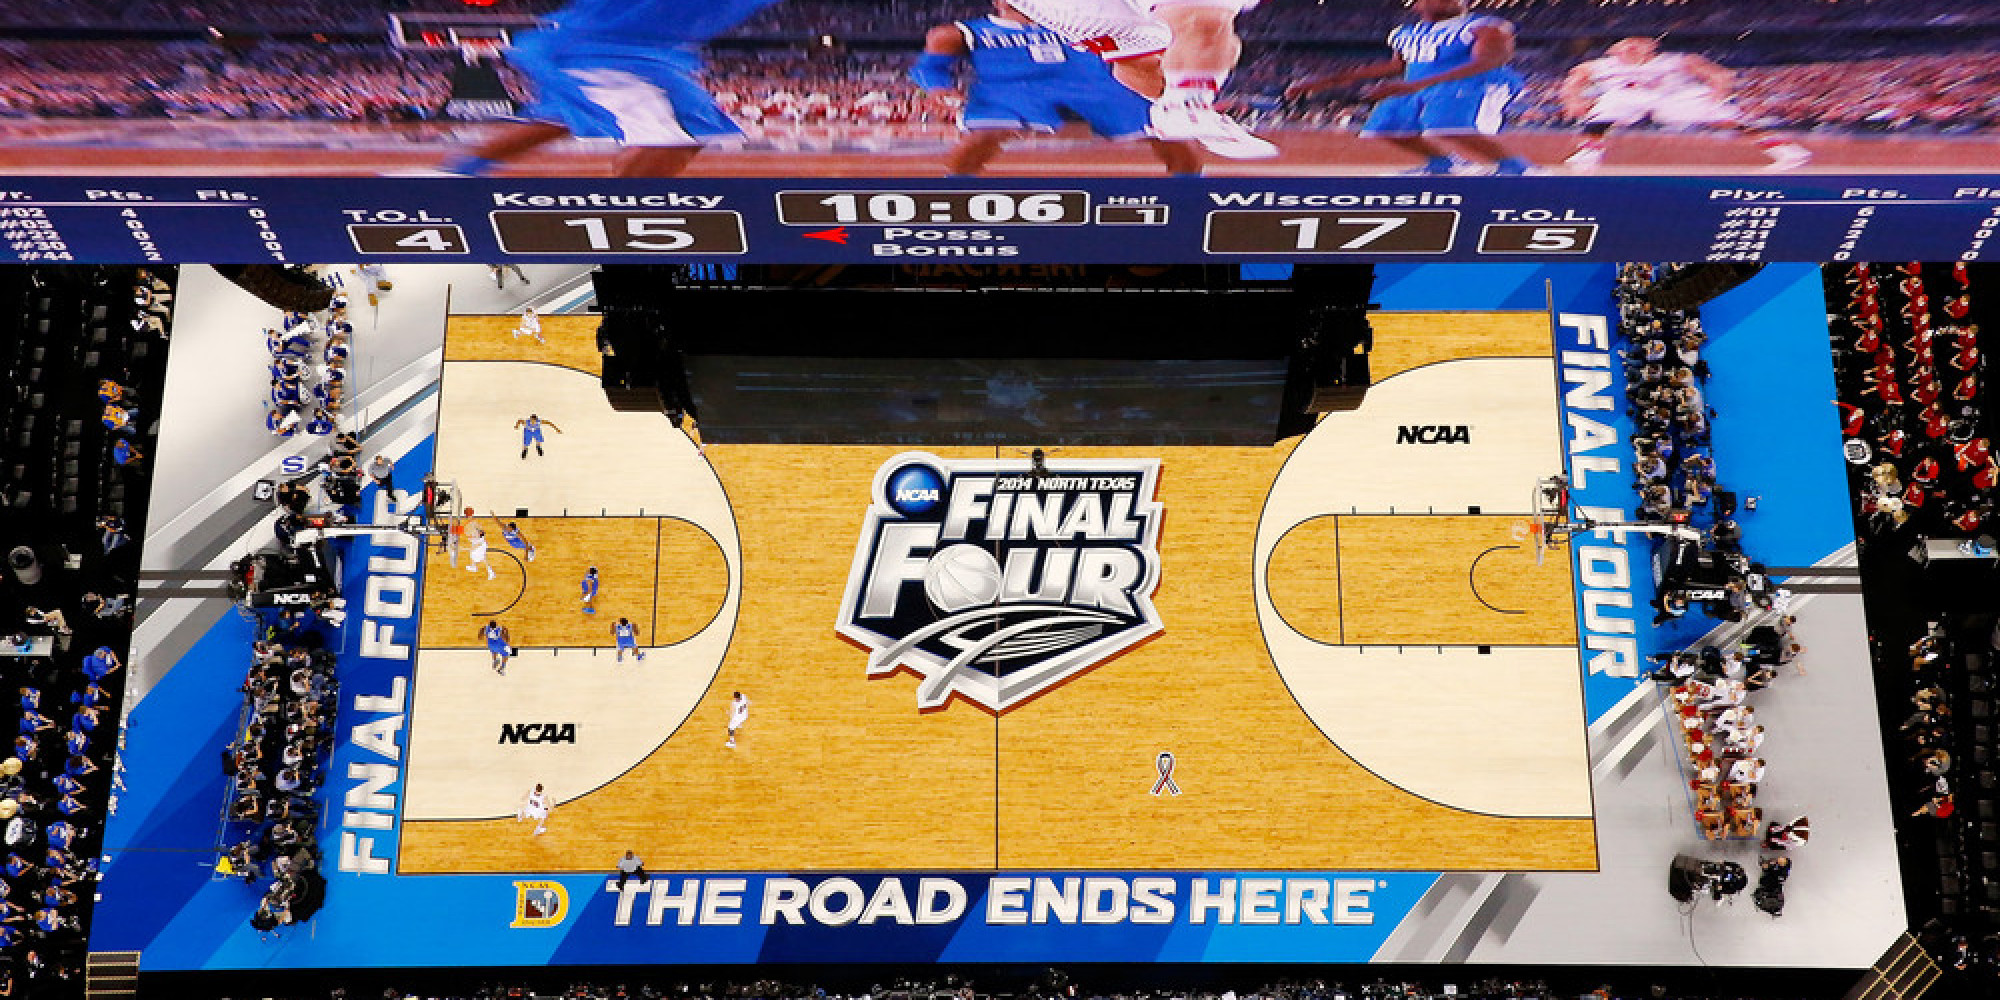 The Texas-Sized Video Screens At The Final Four Are Bigger Than The Basketball Court (PHOTOS)